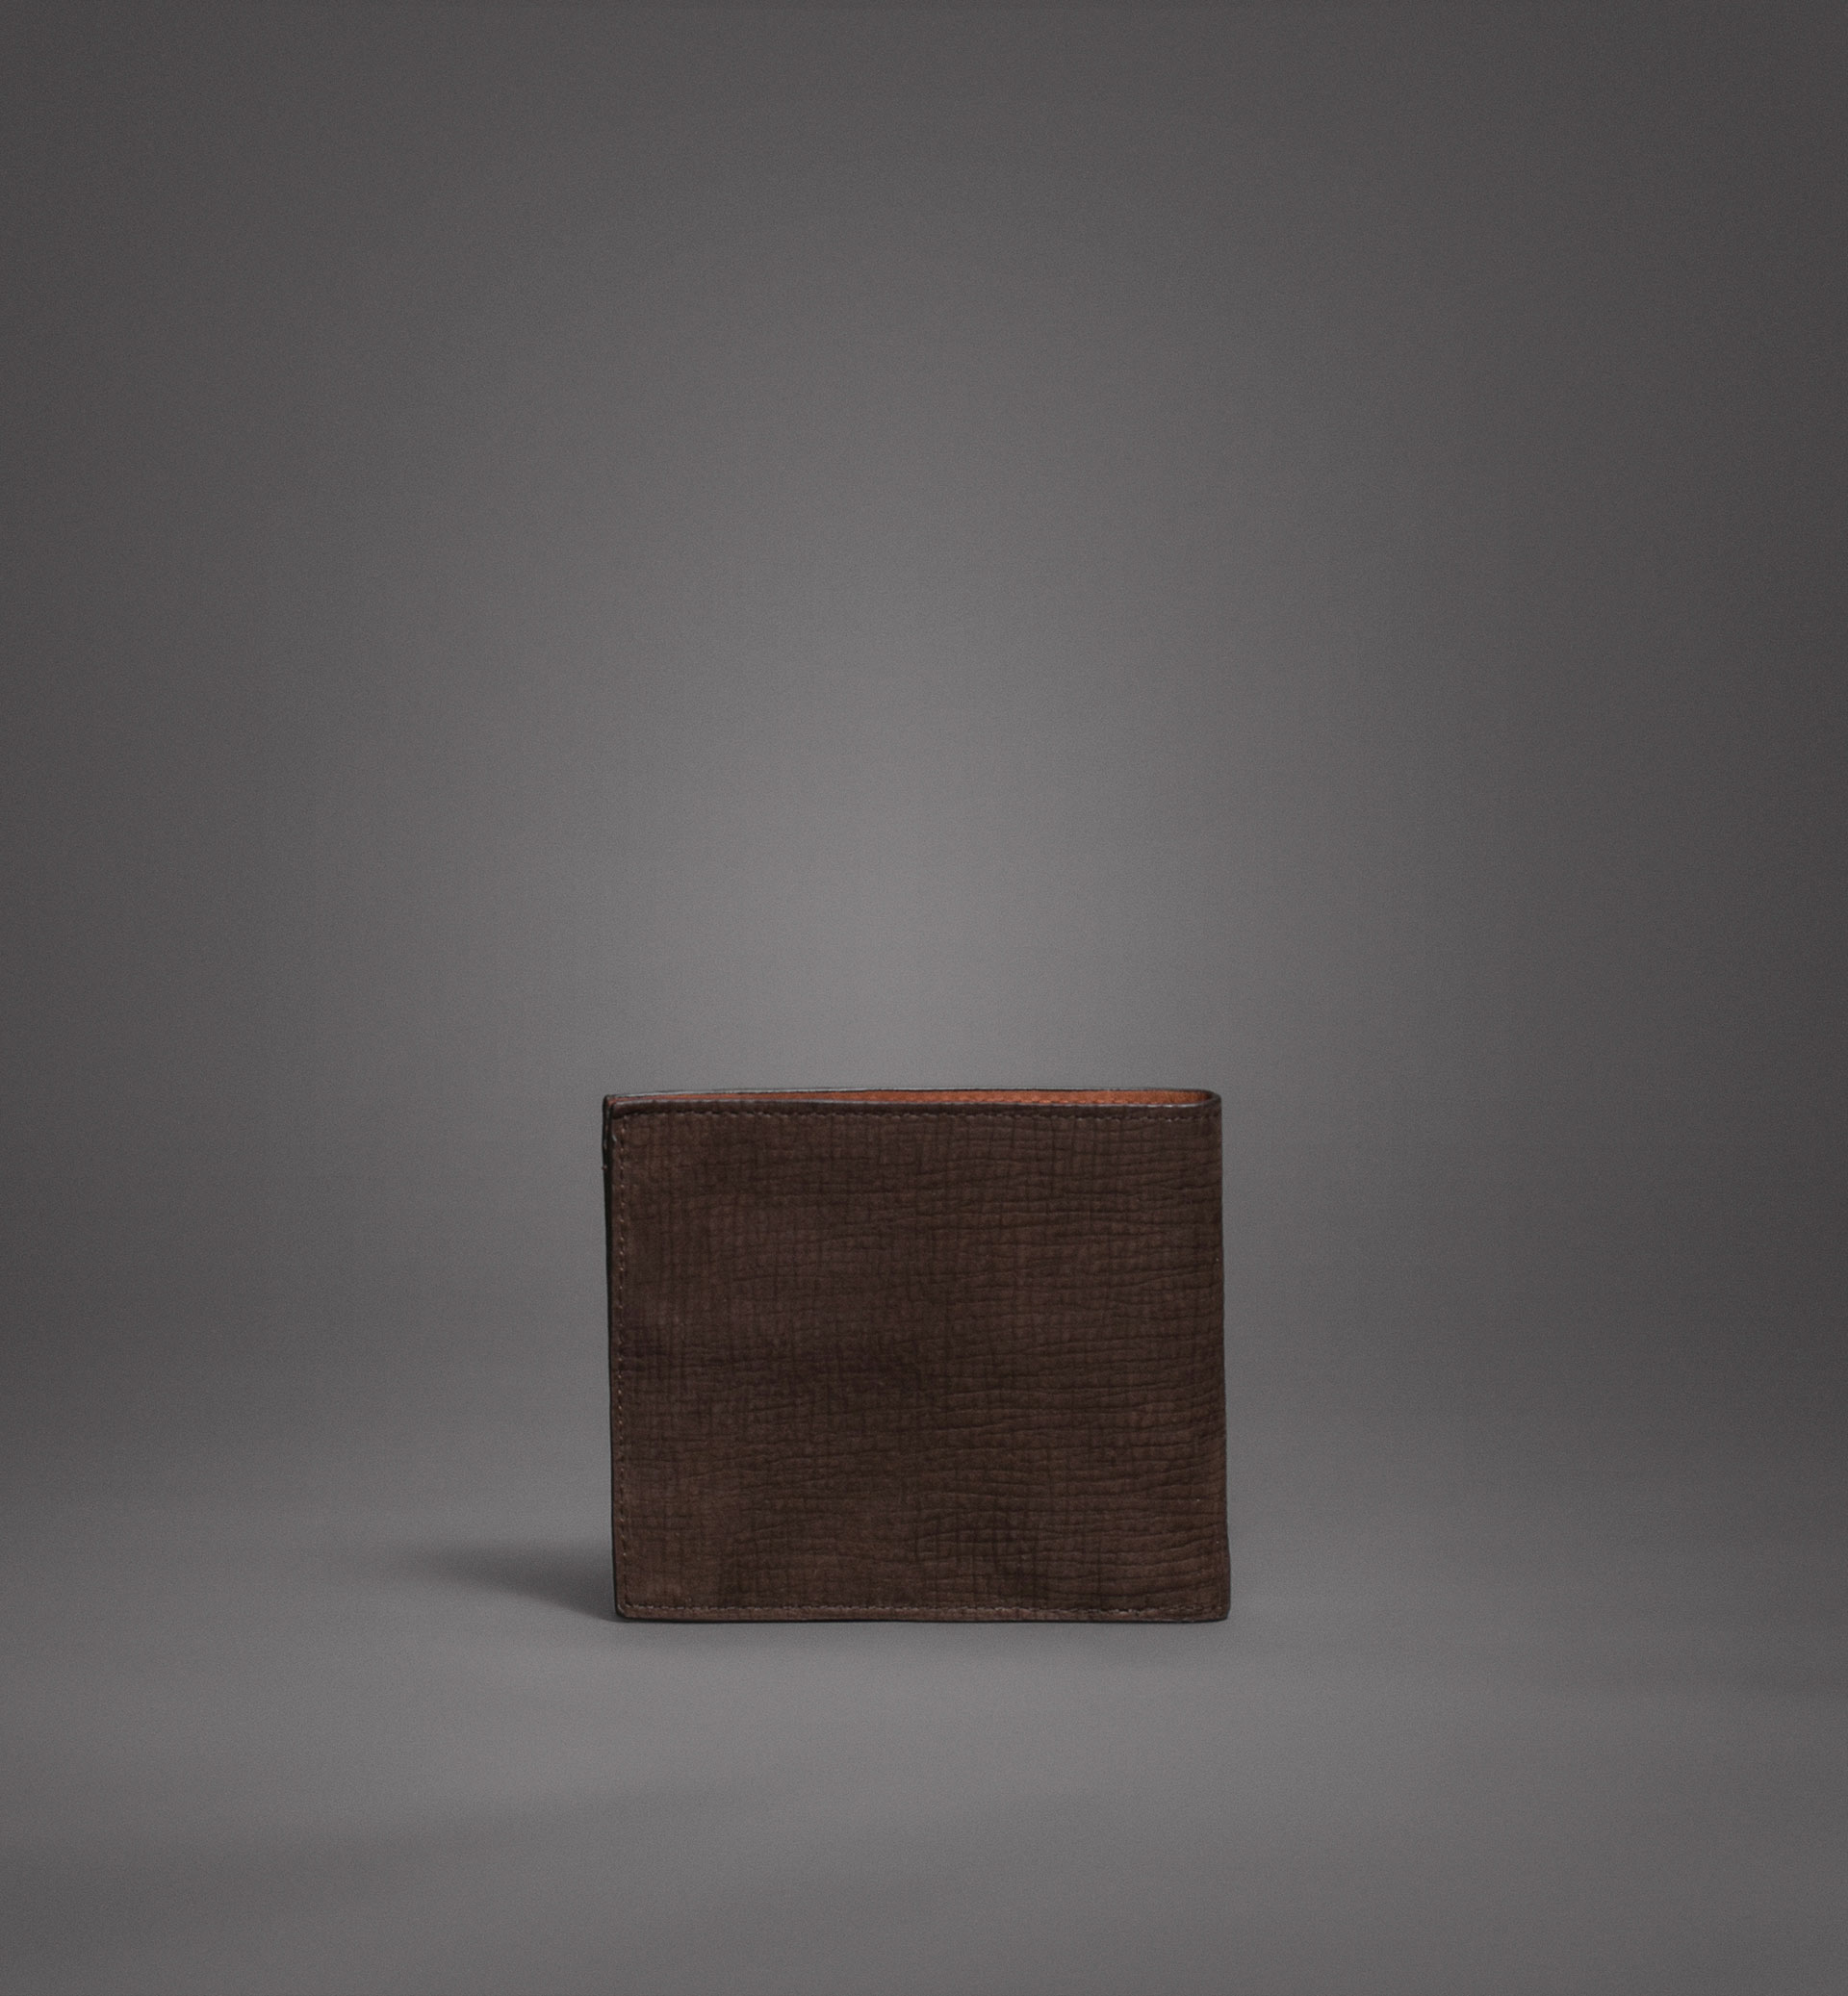 LIMITED EDITION SPLIT SUEDE CONTRAST WALLET